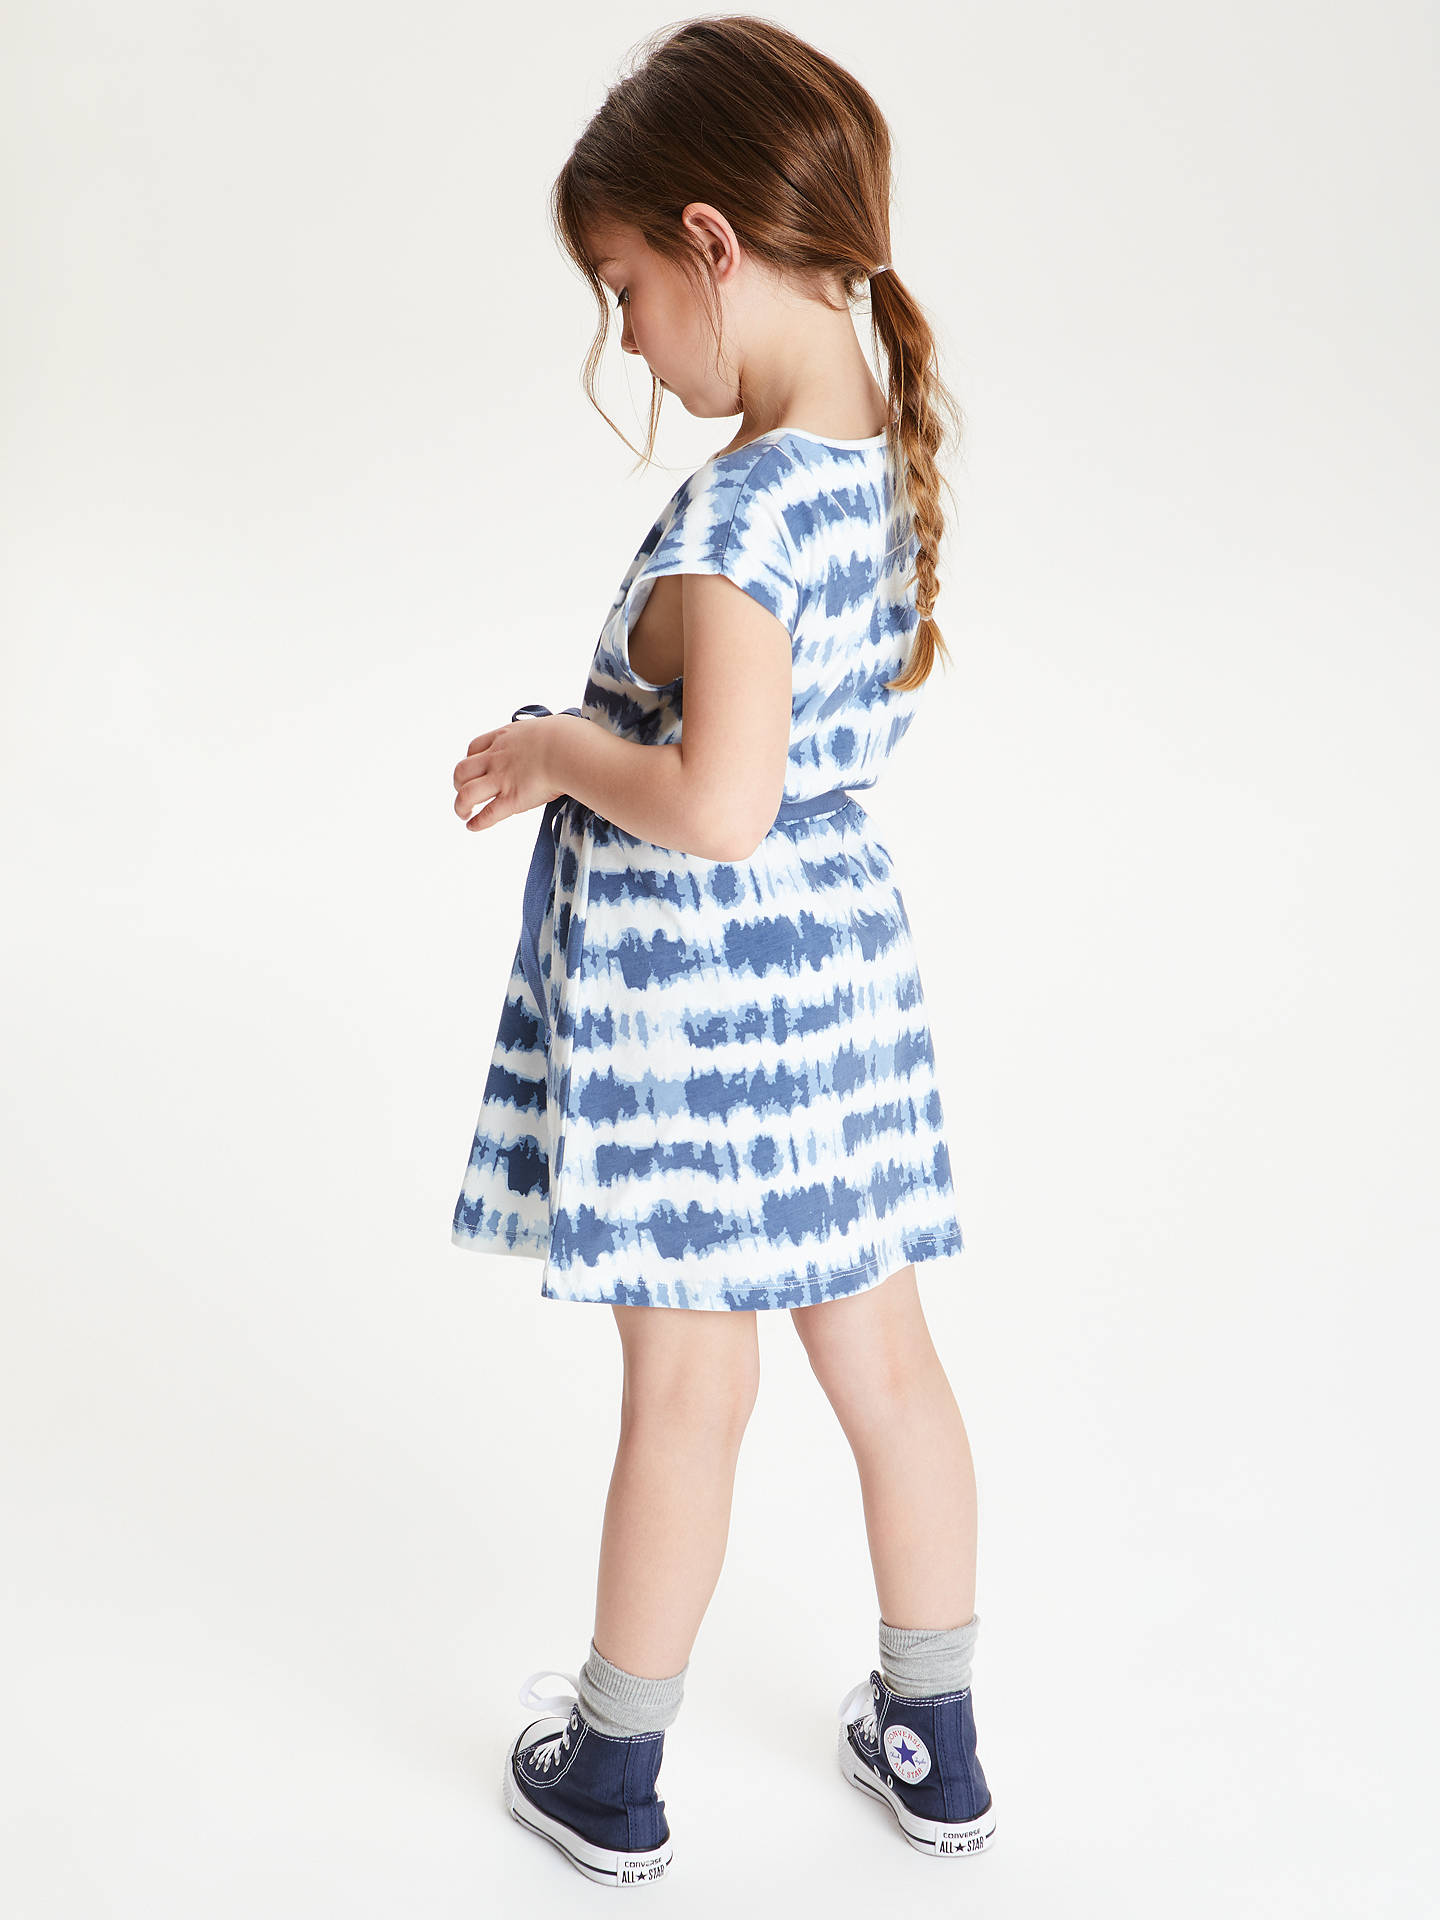 BuyJohn Lewis & Partners Girls' Tie Dye Dress, Blue, 2 years Online at johnlewis.com